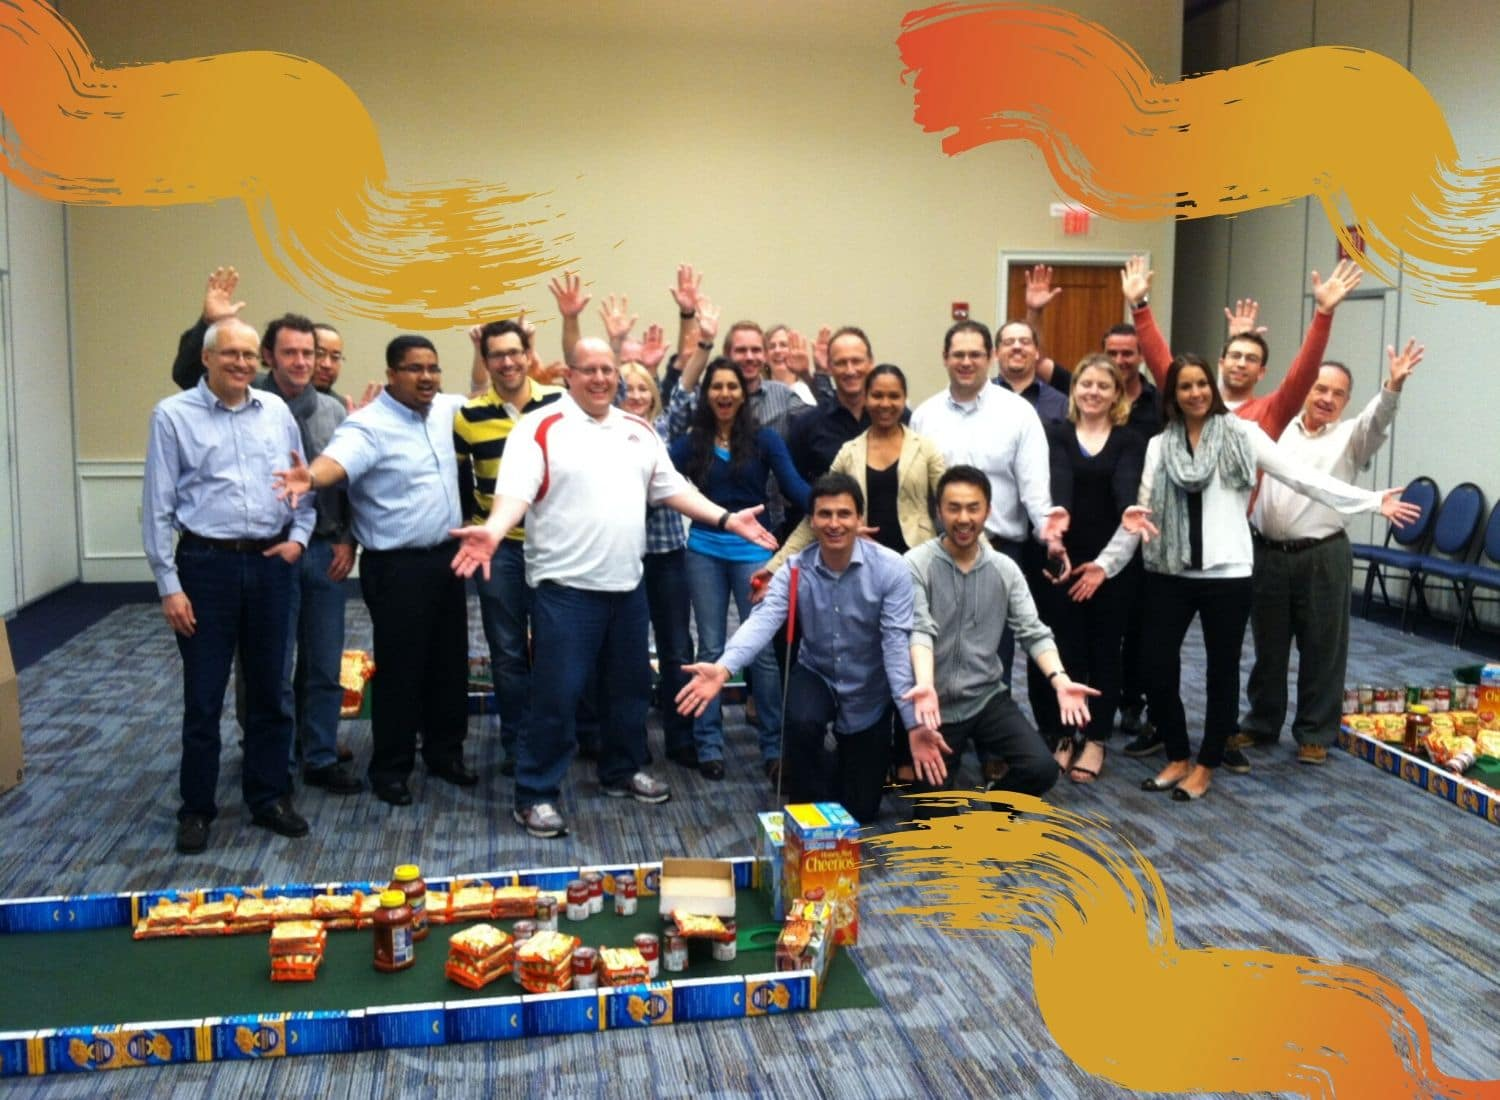 A group of employees enjoy an Ace Race team bonding activity.